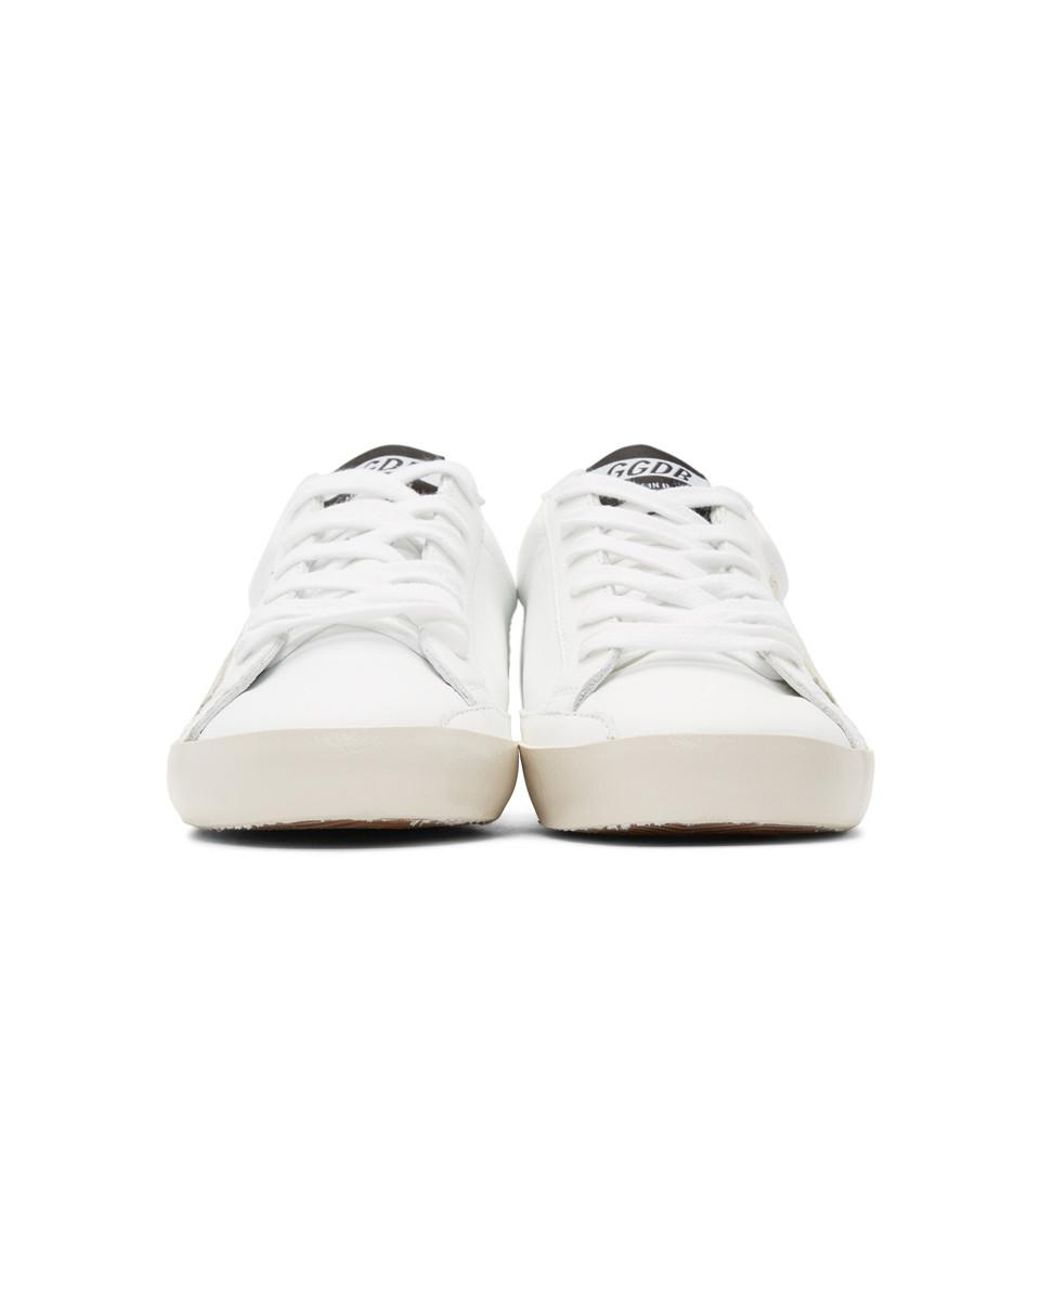 7d90dd15c8994 golden goose deluxe brand women's white and grey clean superstar ...